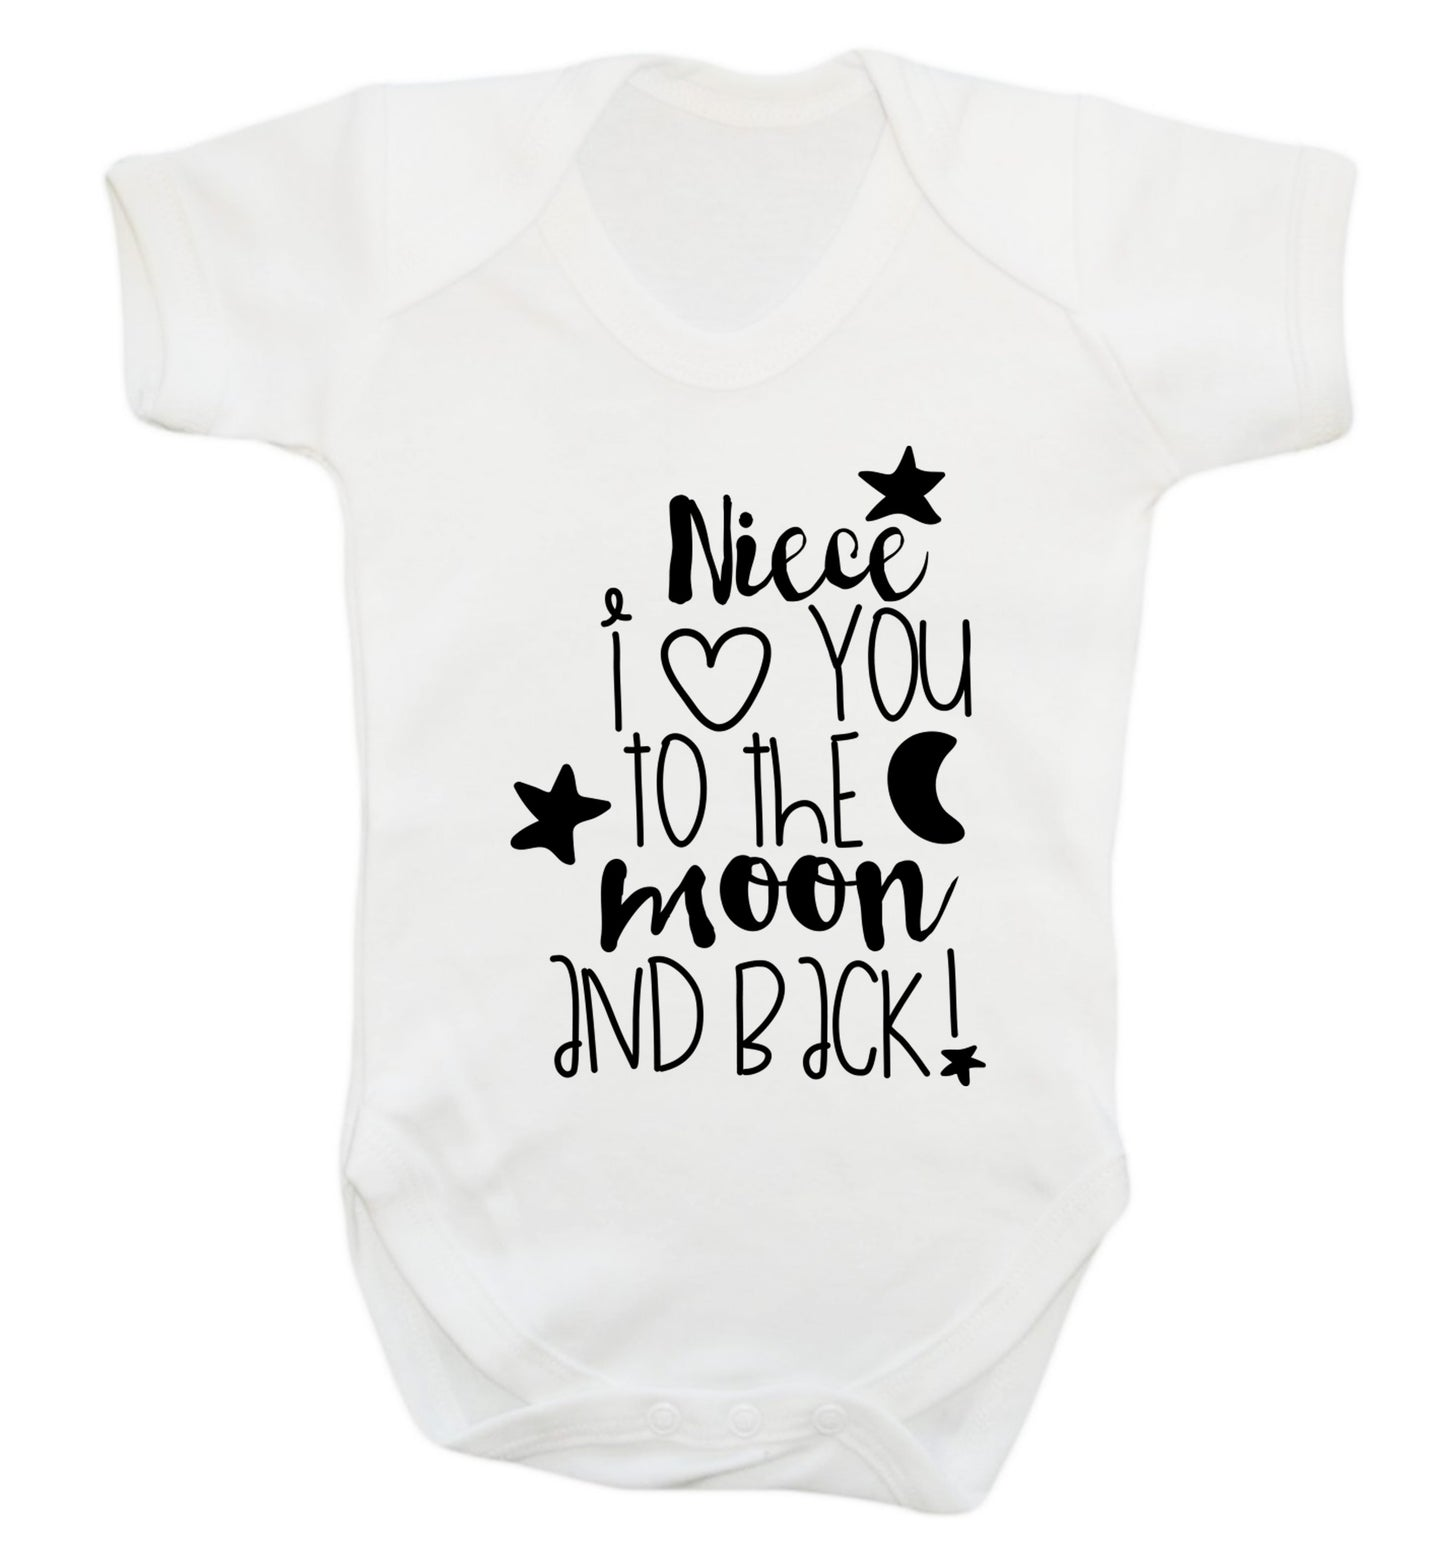 Niece I love you to the moon and back Baby Vest white 18-24 months